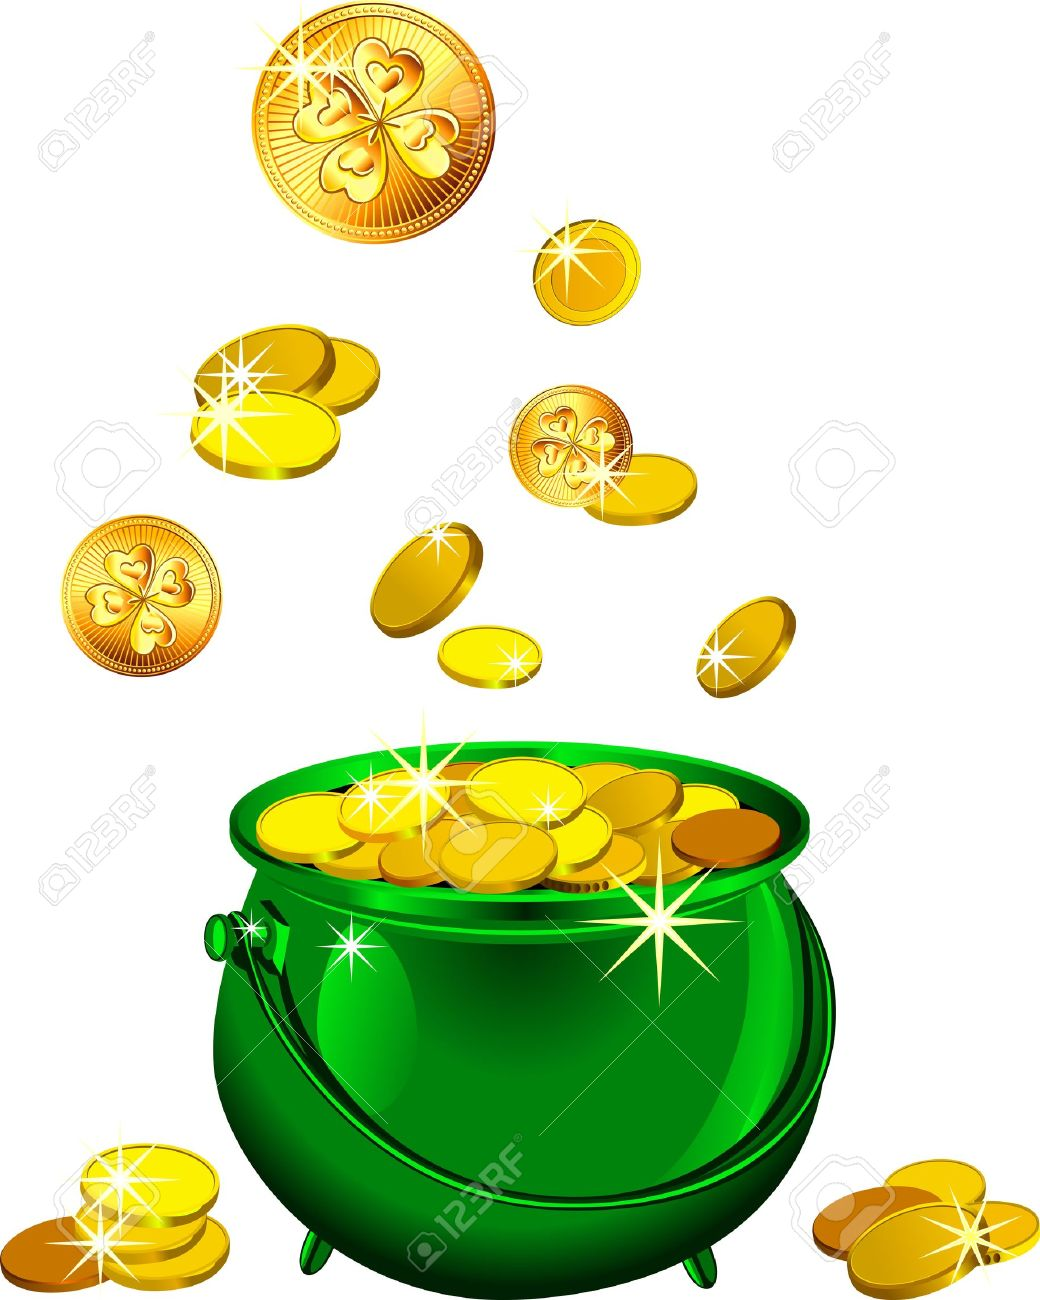 Uncategorized Leprechaun Pot st patrick s day shiny metal pot filled with leprechaun gold coins isolated on the white